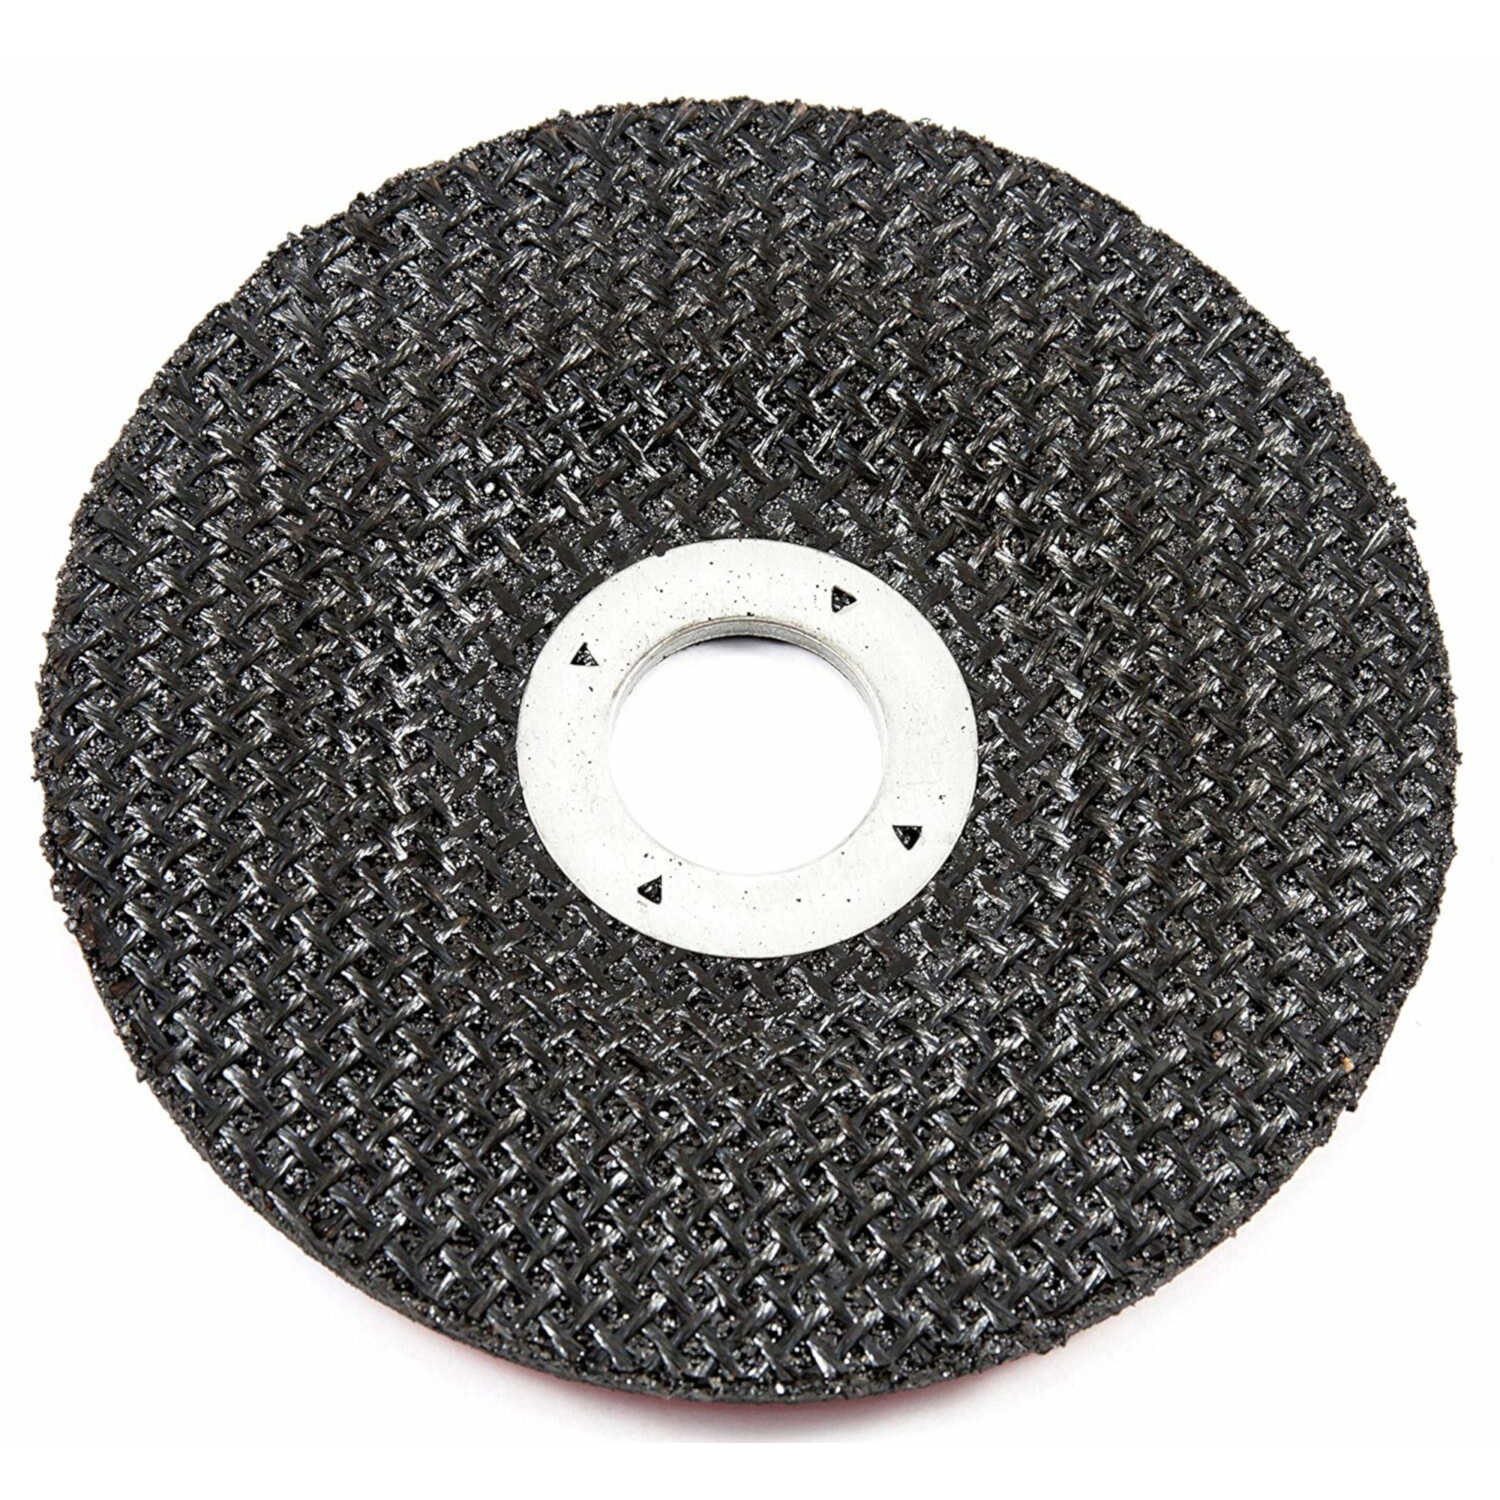 Forney  4-1/2 in. Dia. x 1/8 in. thick  x 7/8 in.   Metal Grinding Wheel  1 pc.